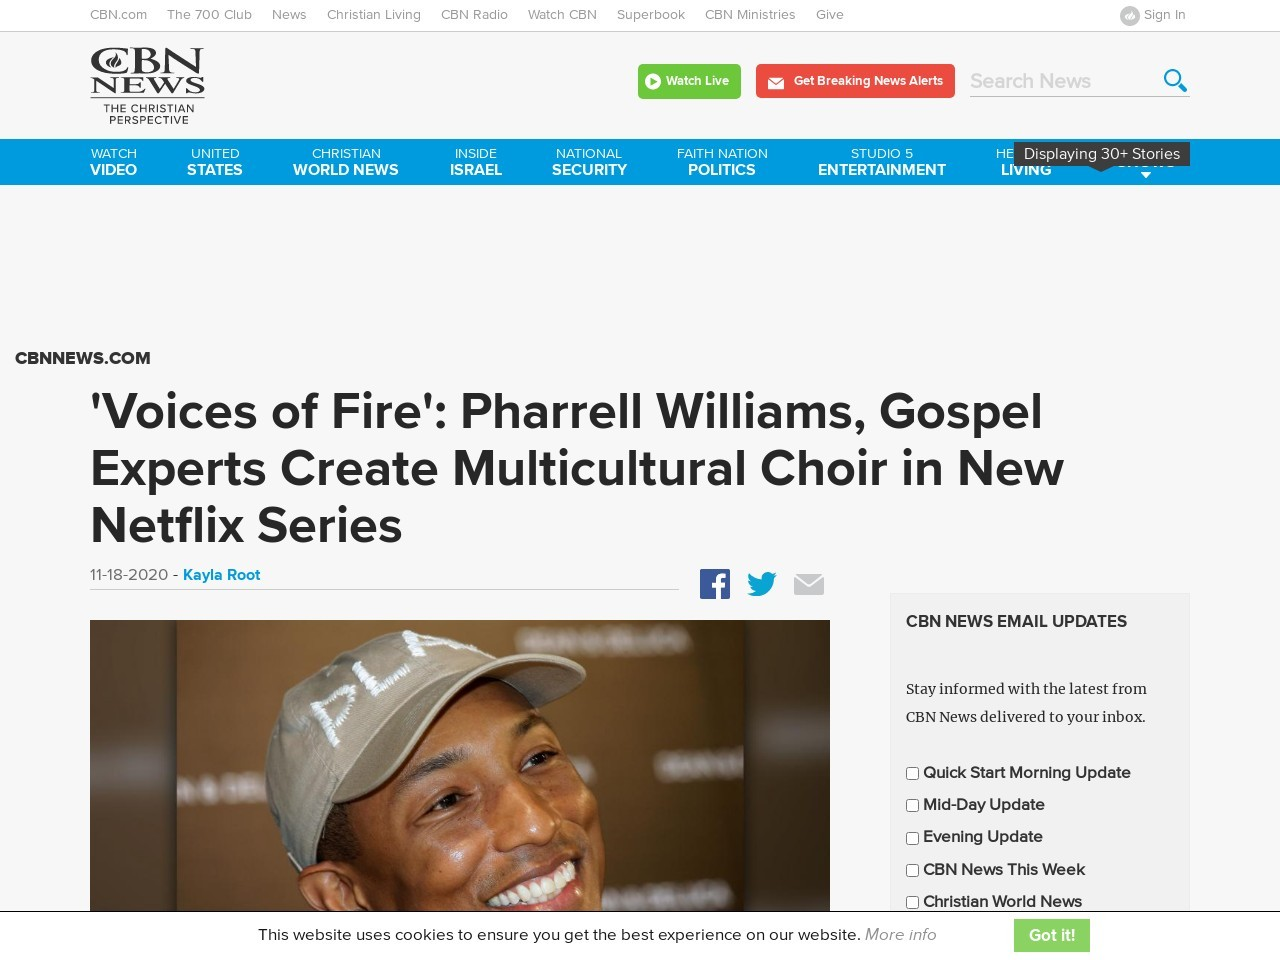 'Voices of Fire': Pharrell Williams, Gospel Experts Create Multicultural Choir in New Netflix Series